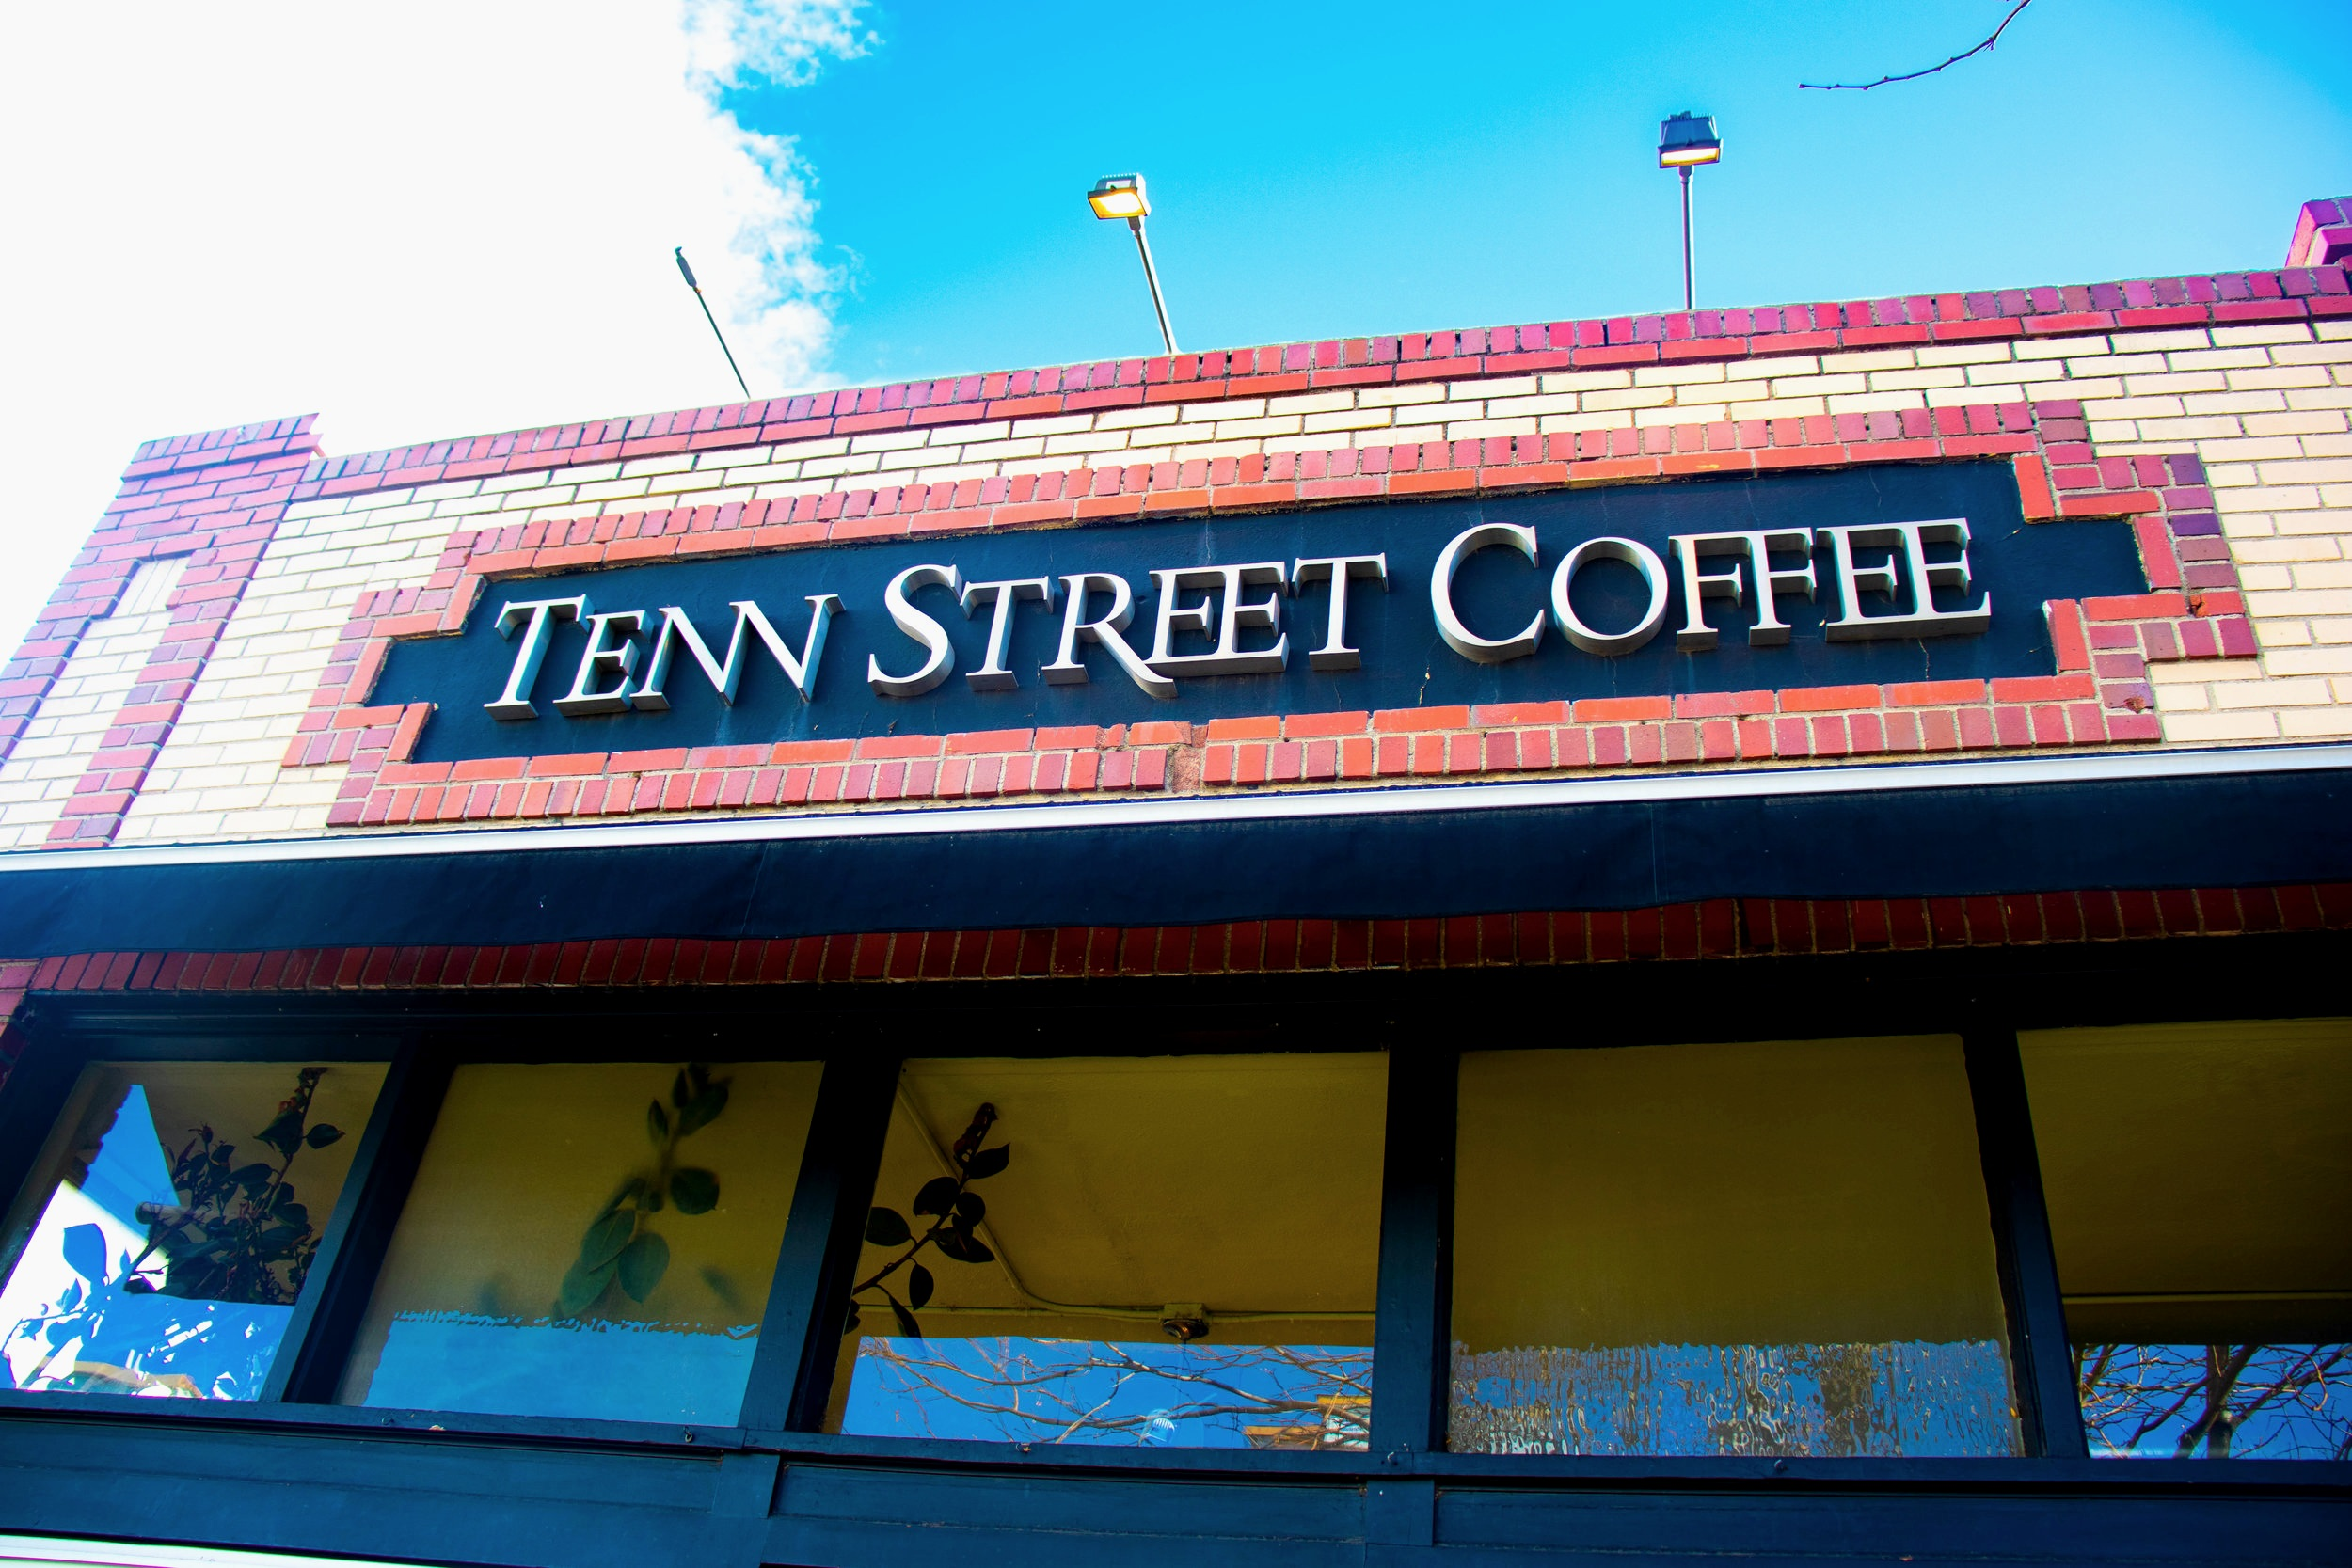 Tenn Street Coffee